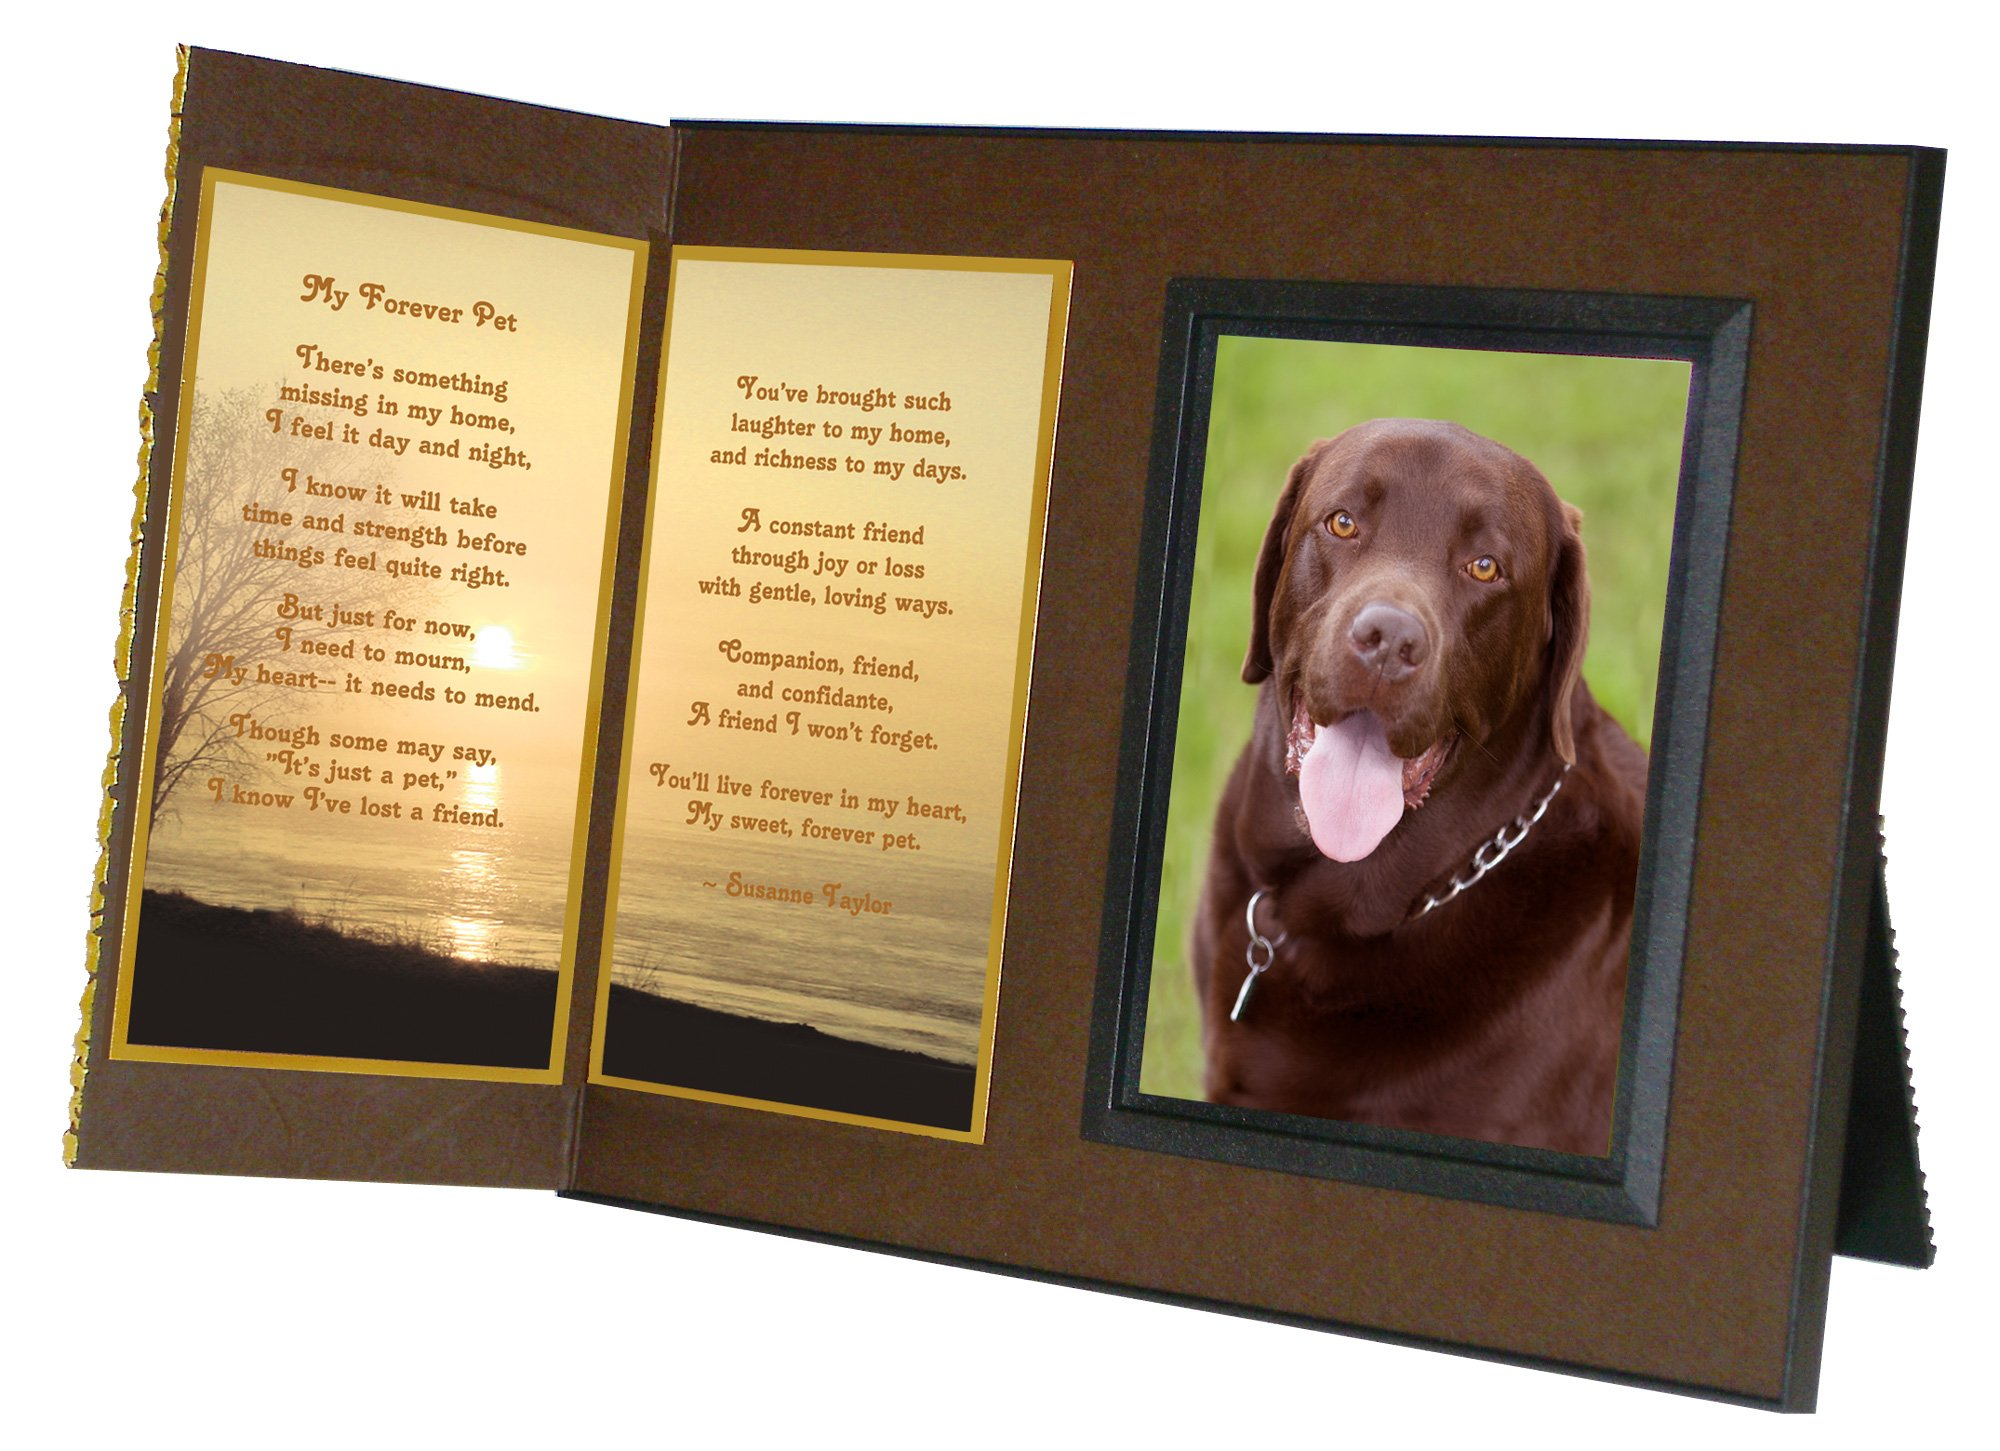 Pet Lover Remembrance Gift, ''My Forever Pet'' Poem, Memorial Pet Loss Picture Frame Keepsake and Sympathy Gift Package, Rich Dark Brown with Foil Accent